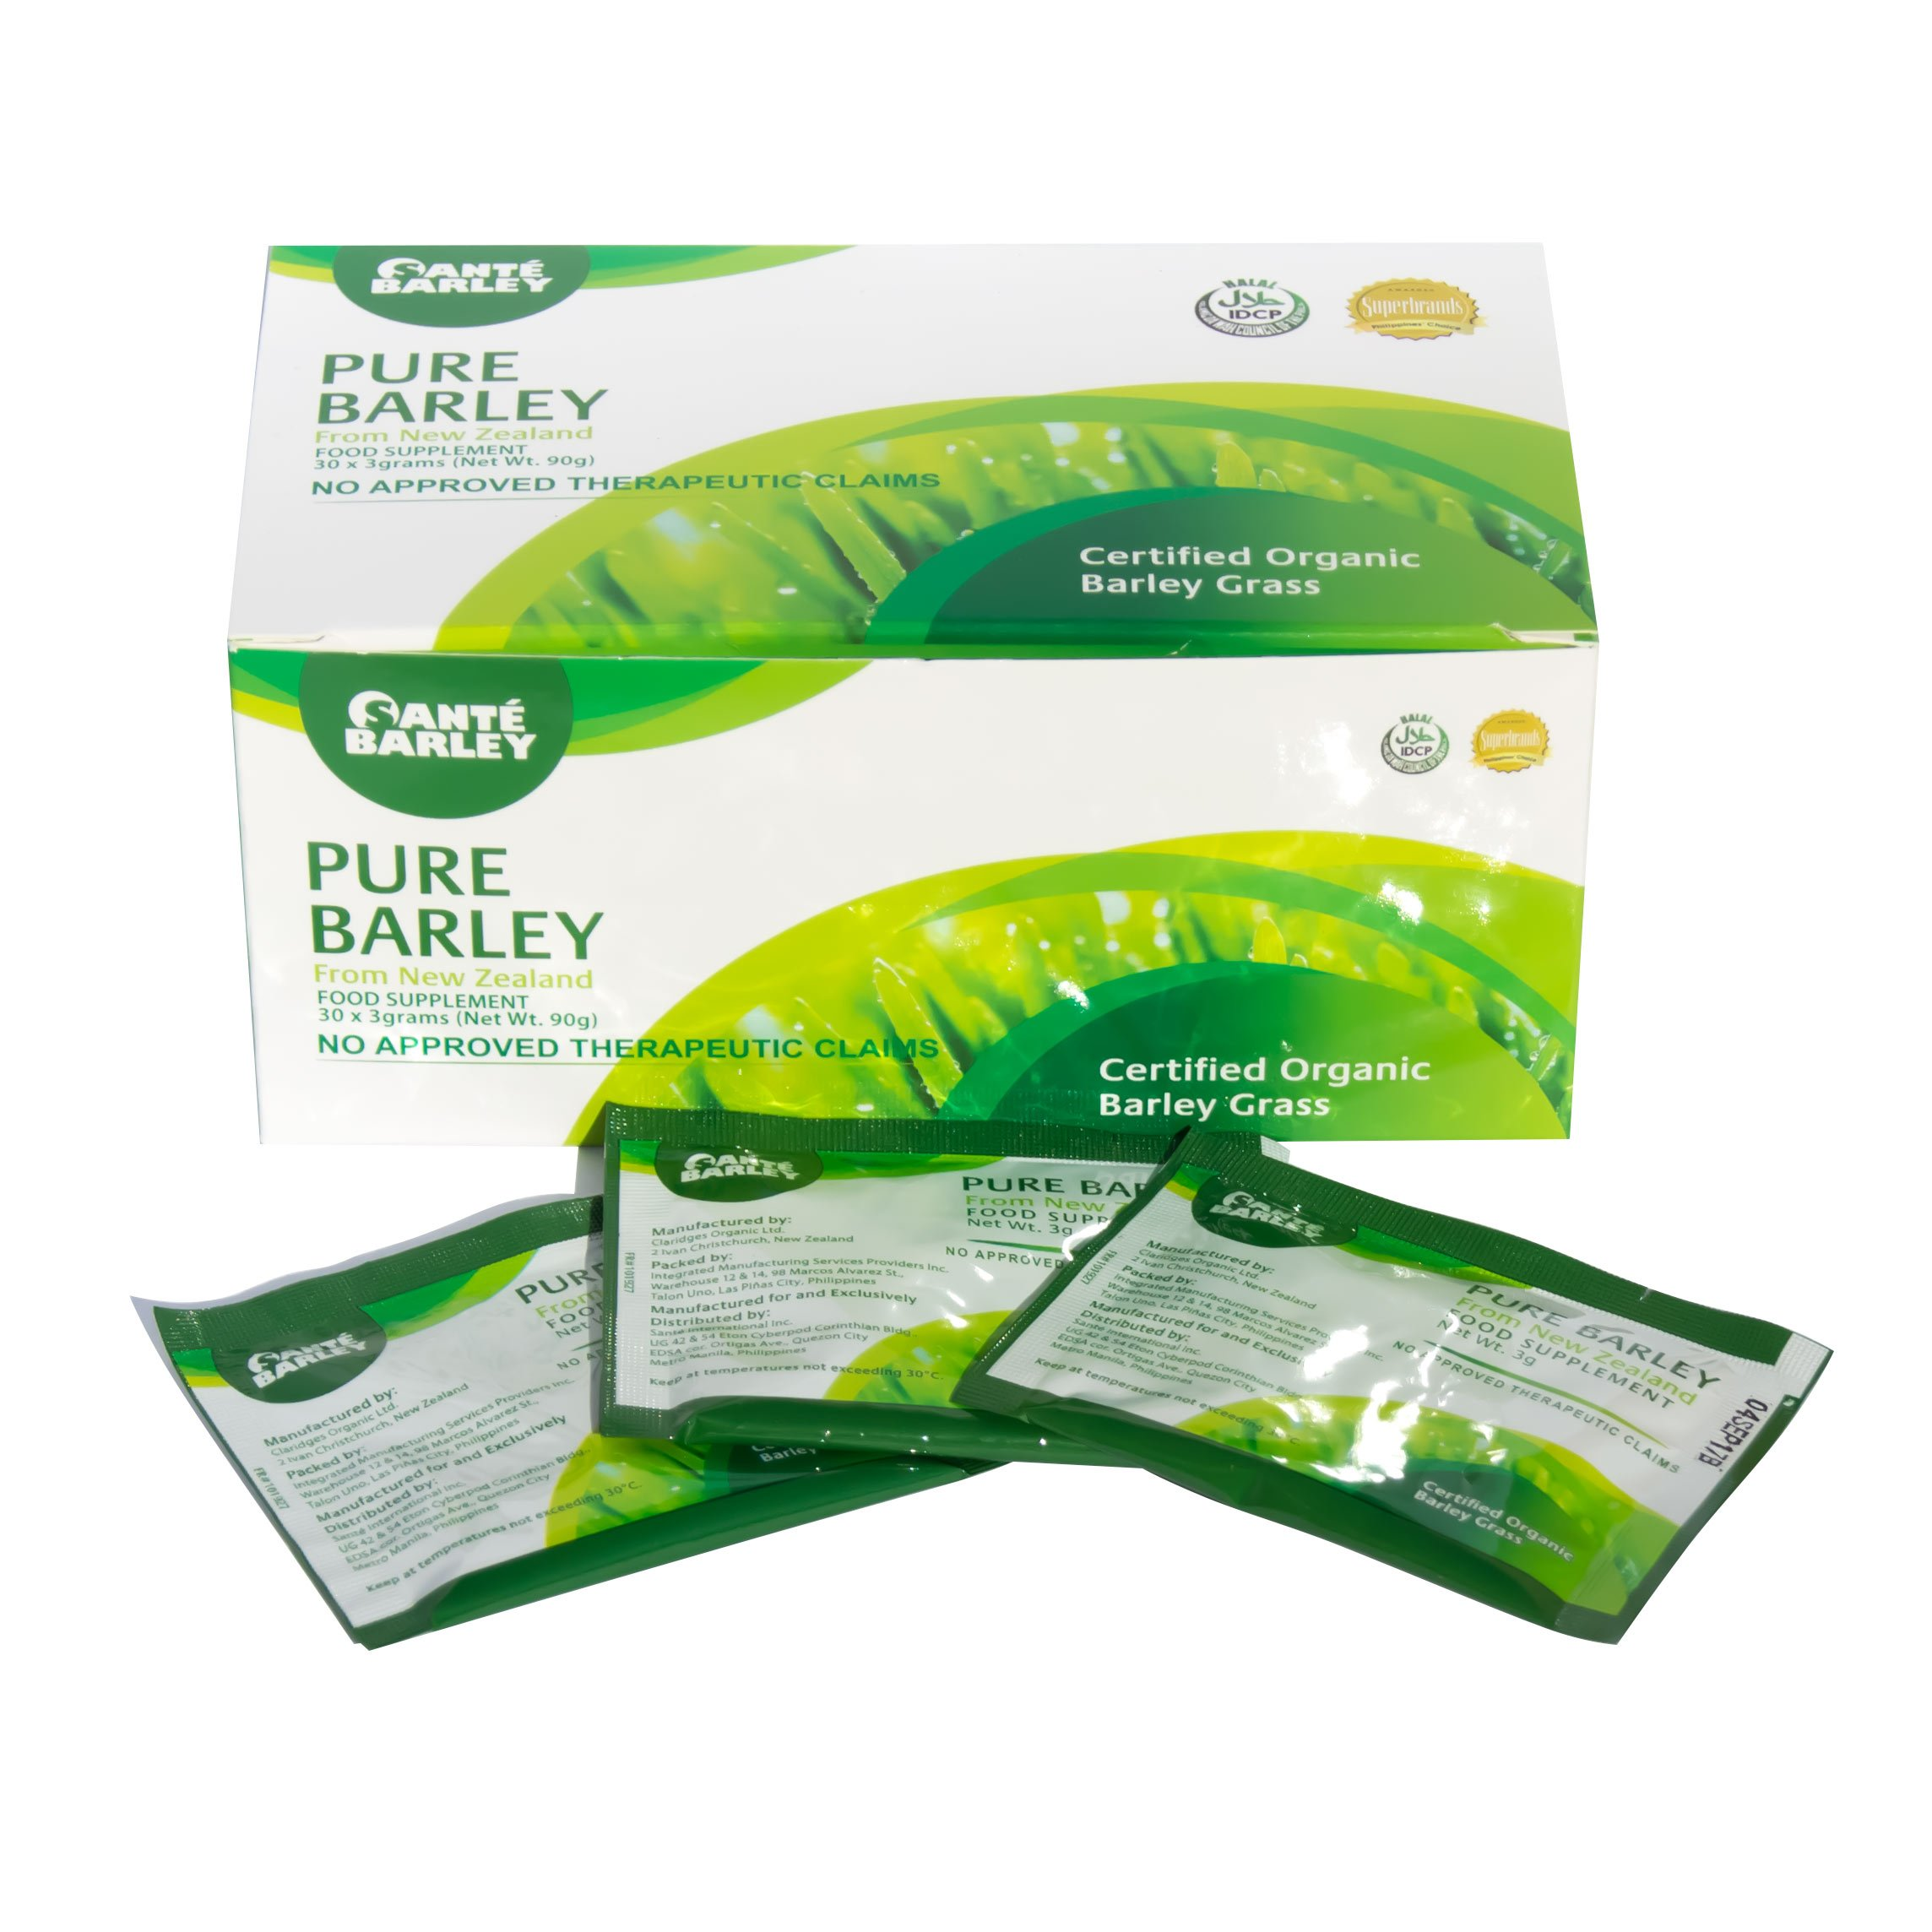 3 Boxes of Sante Pure Barley New Zealand Blend with Stevia - Large Box 30 Sachets Total 90 Grams